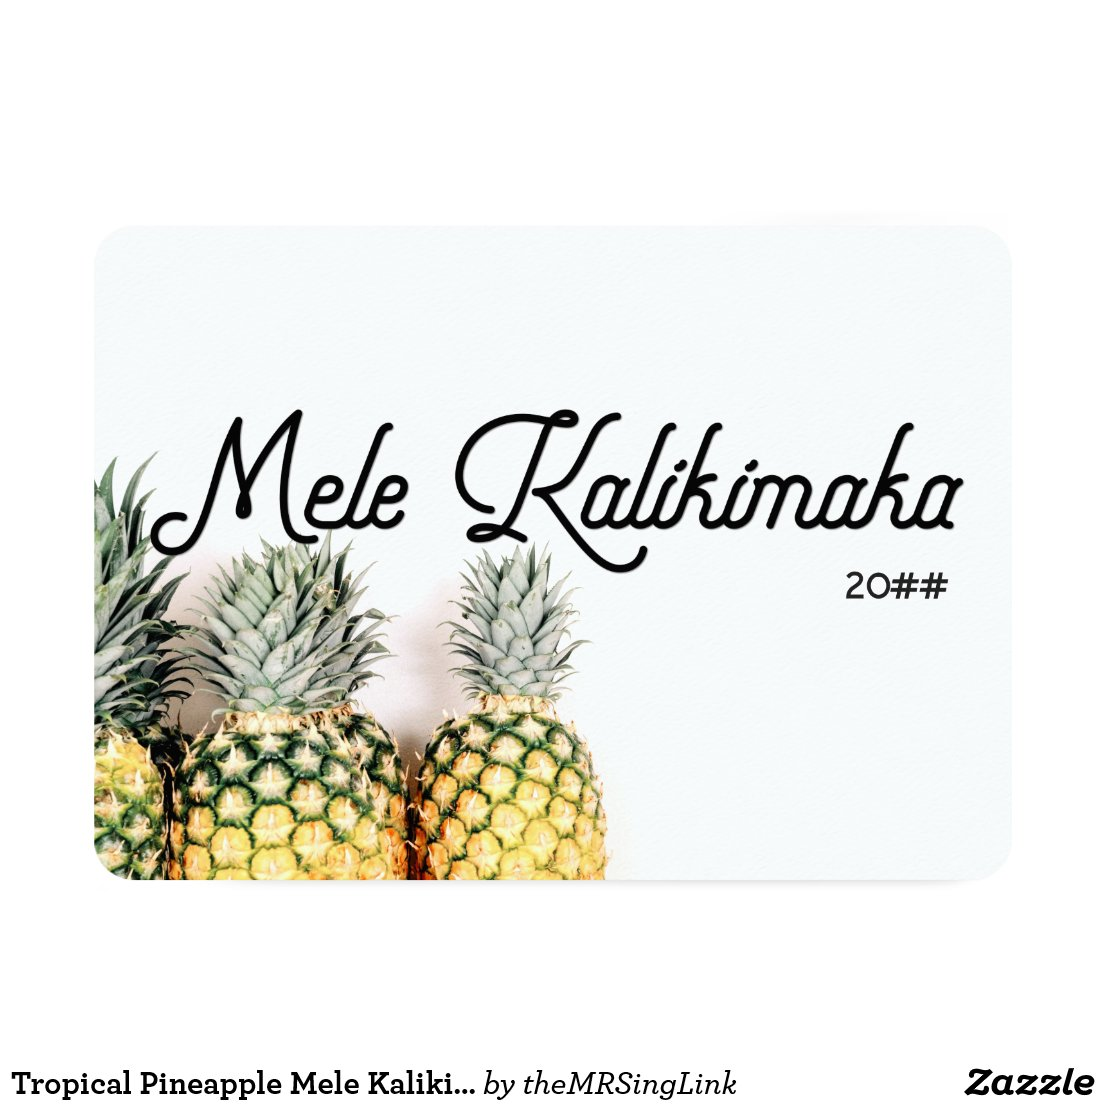 Tropical Pineapple Mele Kalikimaka Christmas Card